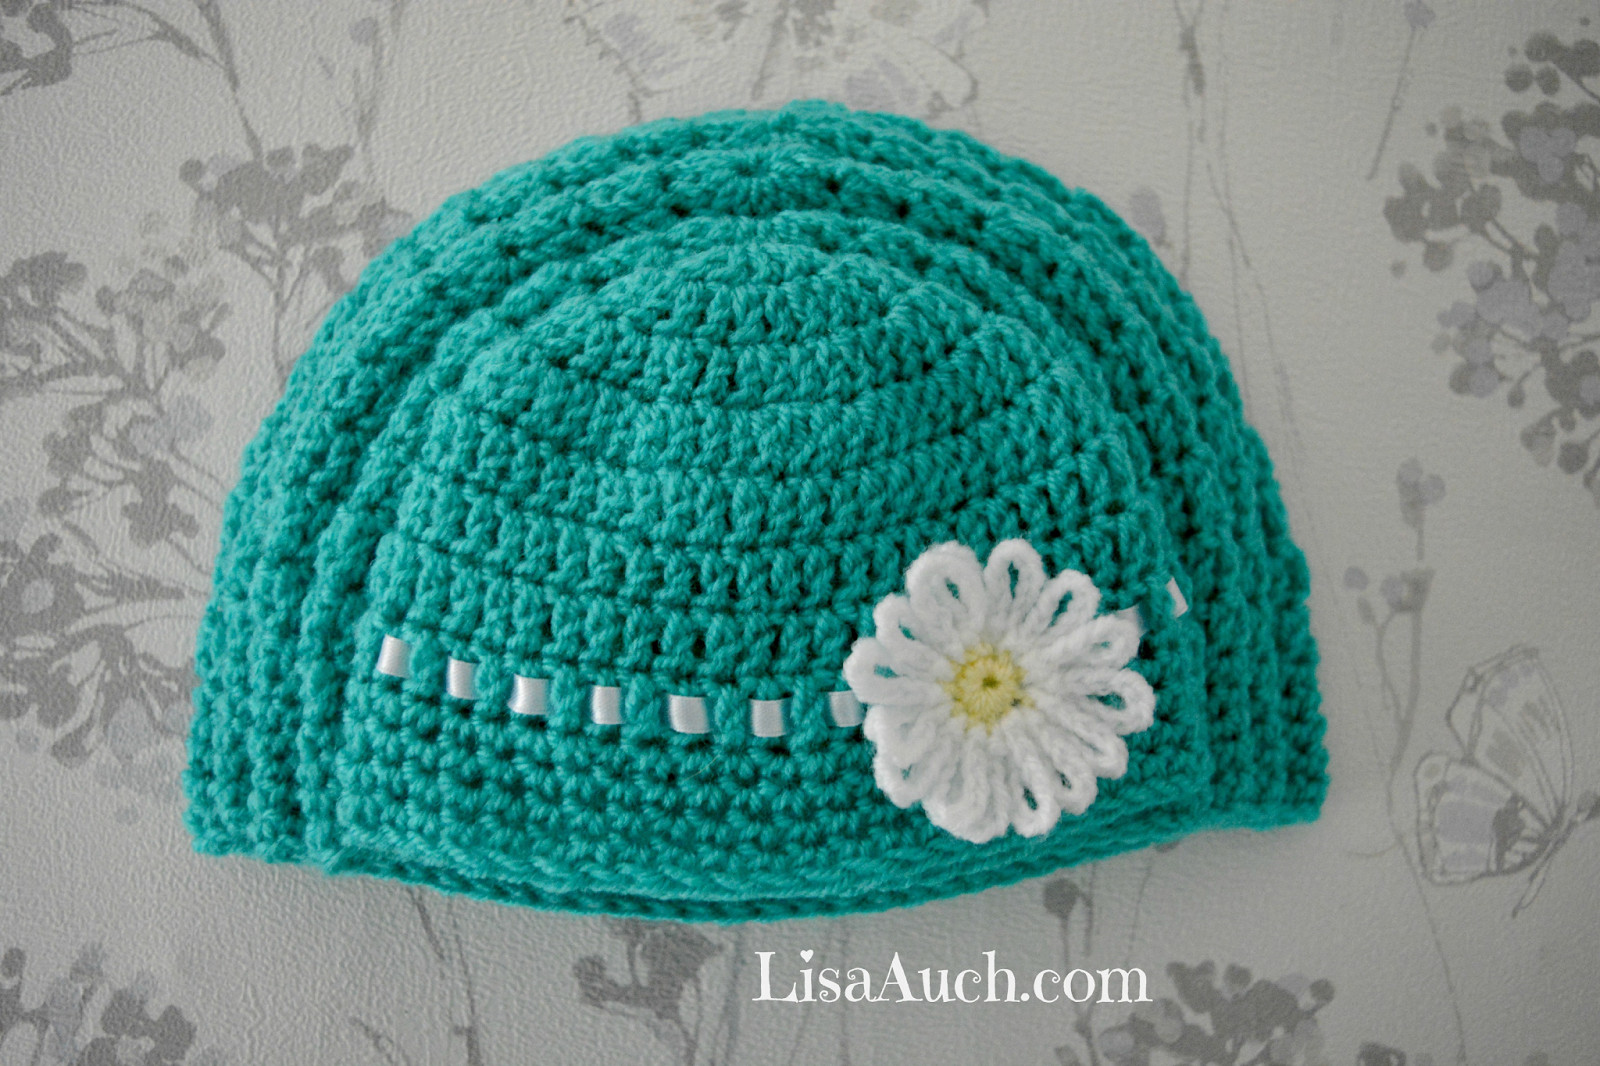 Best Of Free Easy Crochet Baby Hat Pattern with Crochet Flower Free Crochet Infant Hat Patterns Of Luxury Baby Hat Crochet Pattern Modern Homemakers Free Crochet Infant Hat Patterns